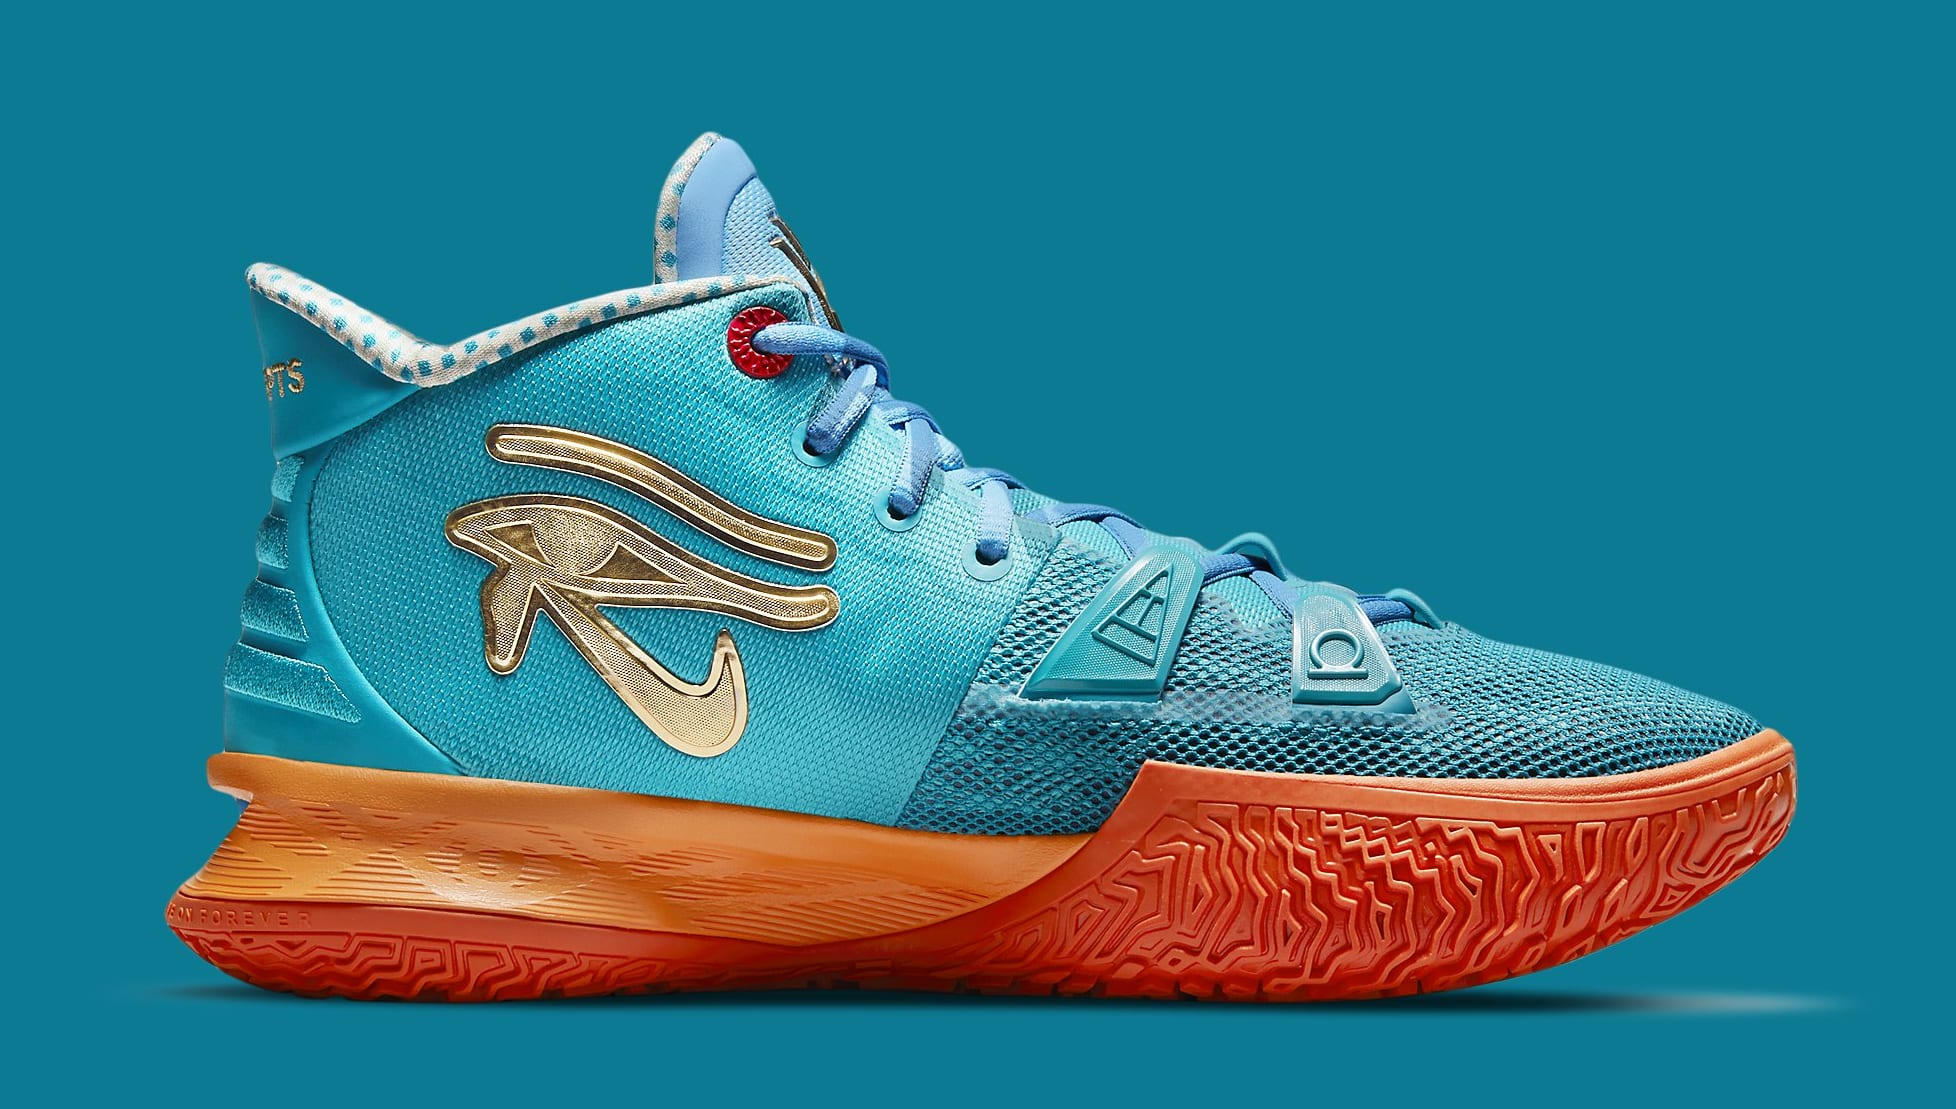 Concepts x Nike Kyrie 7 CT1137-900 Medial